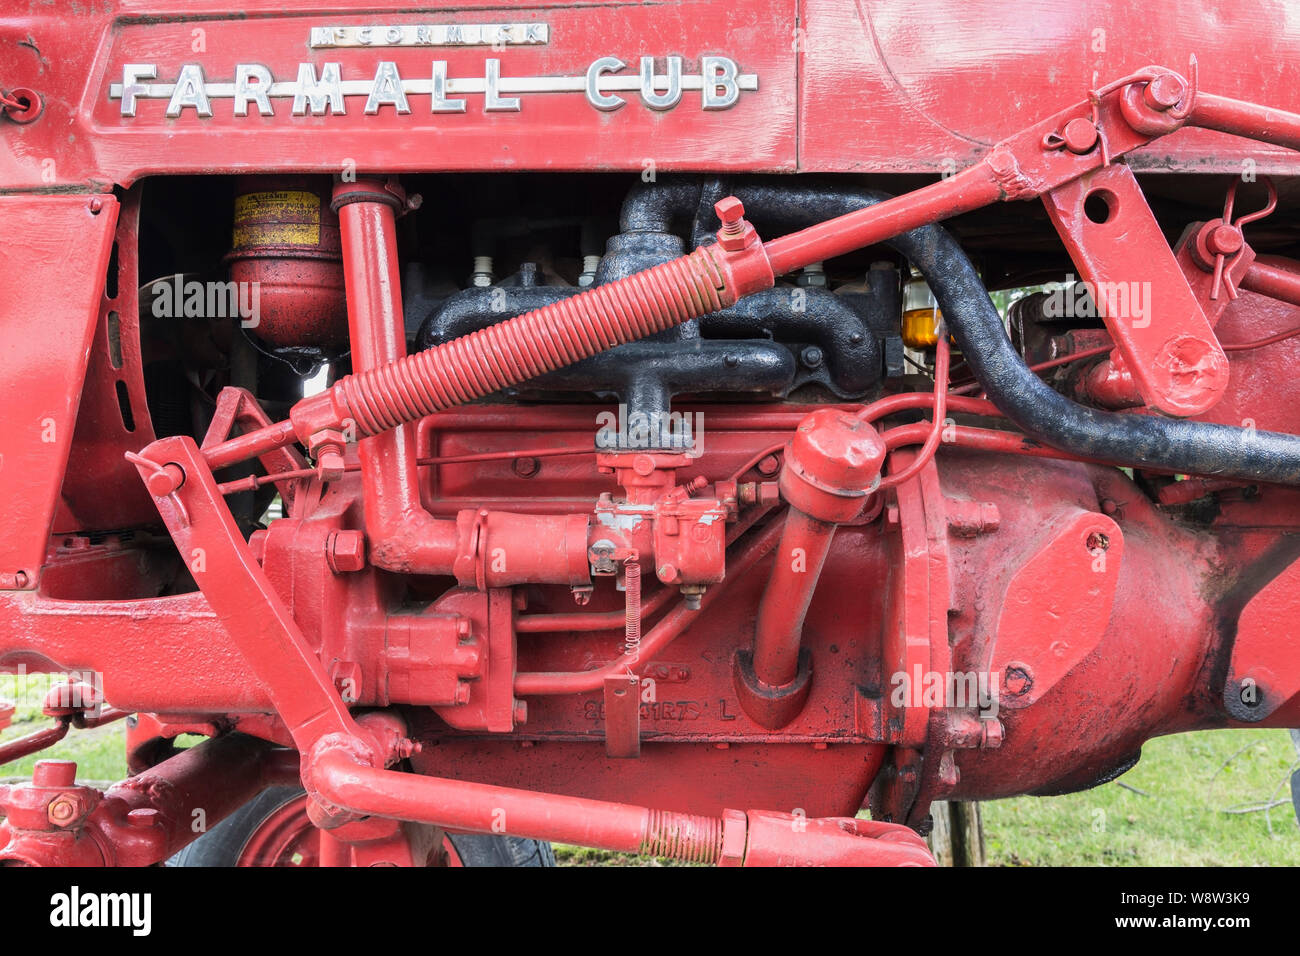 Close-up of old red painted McCormick Farmall Cub tractor